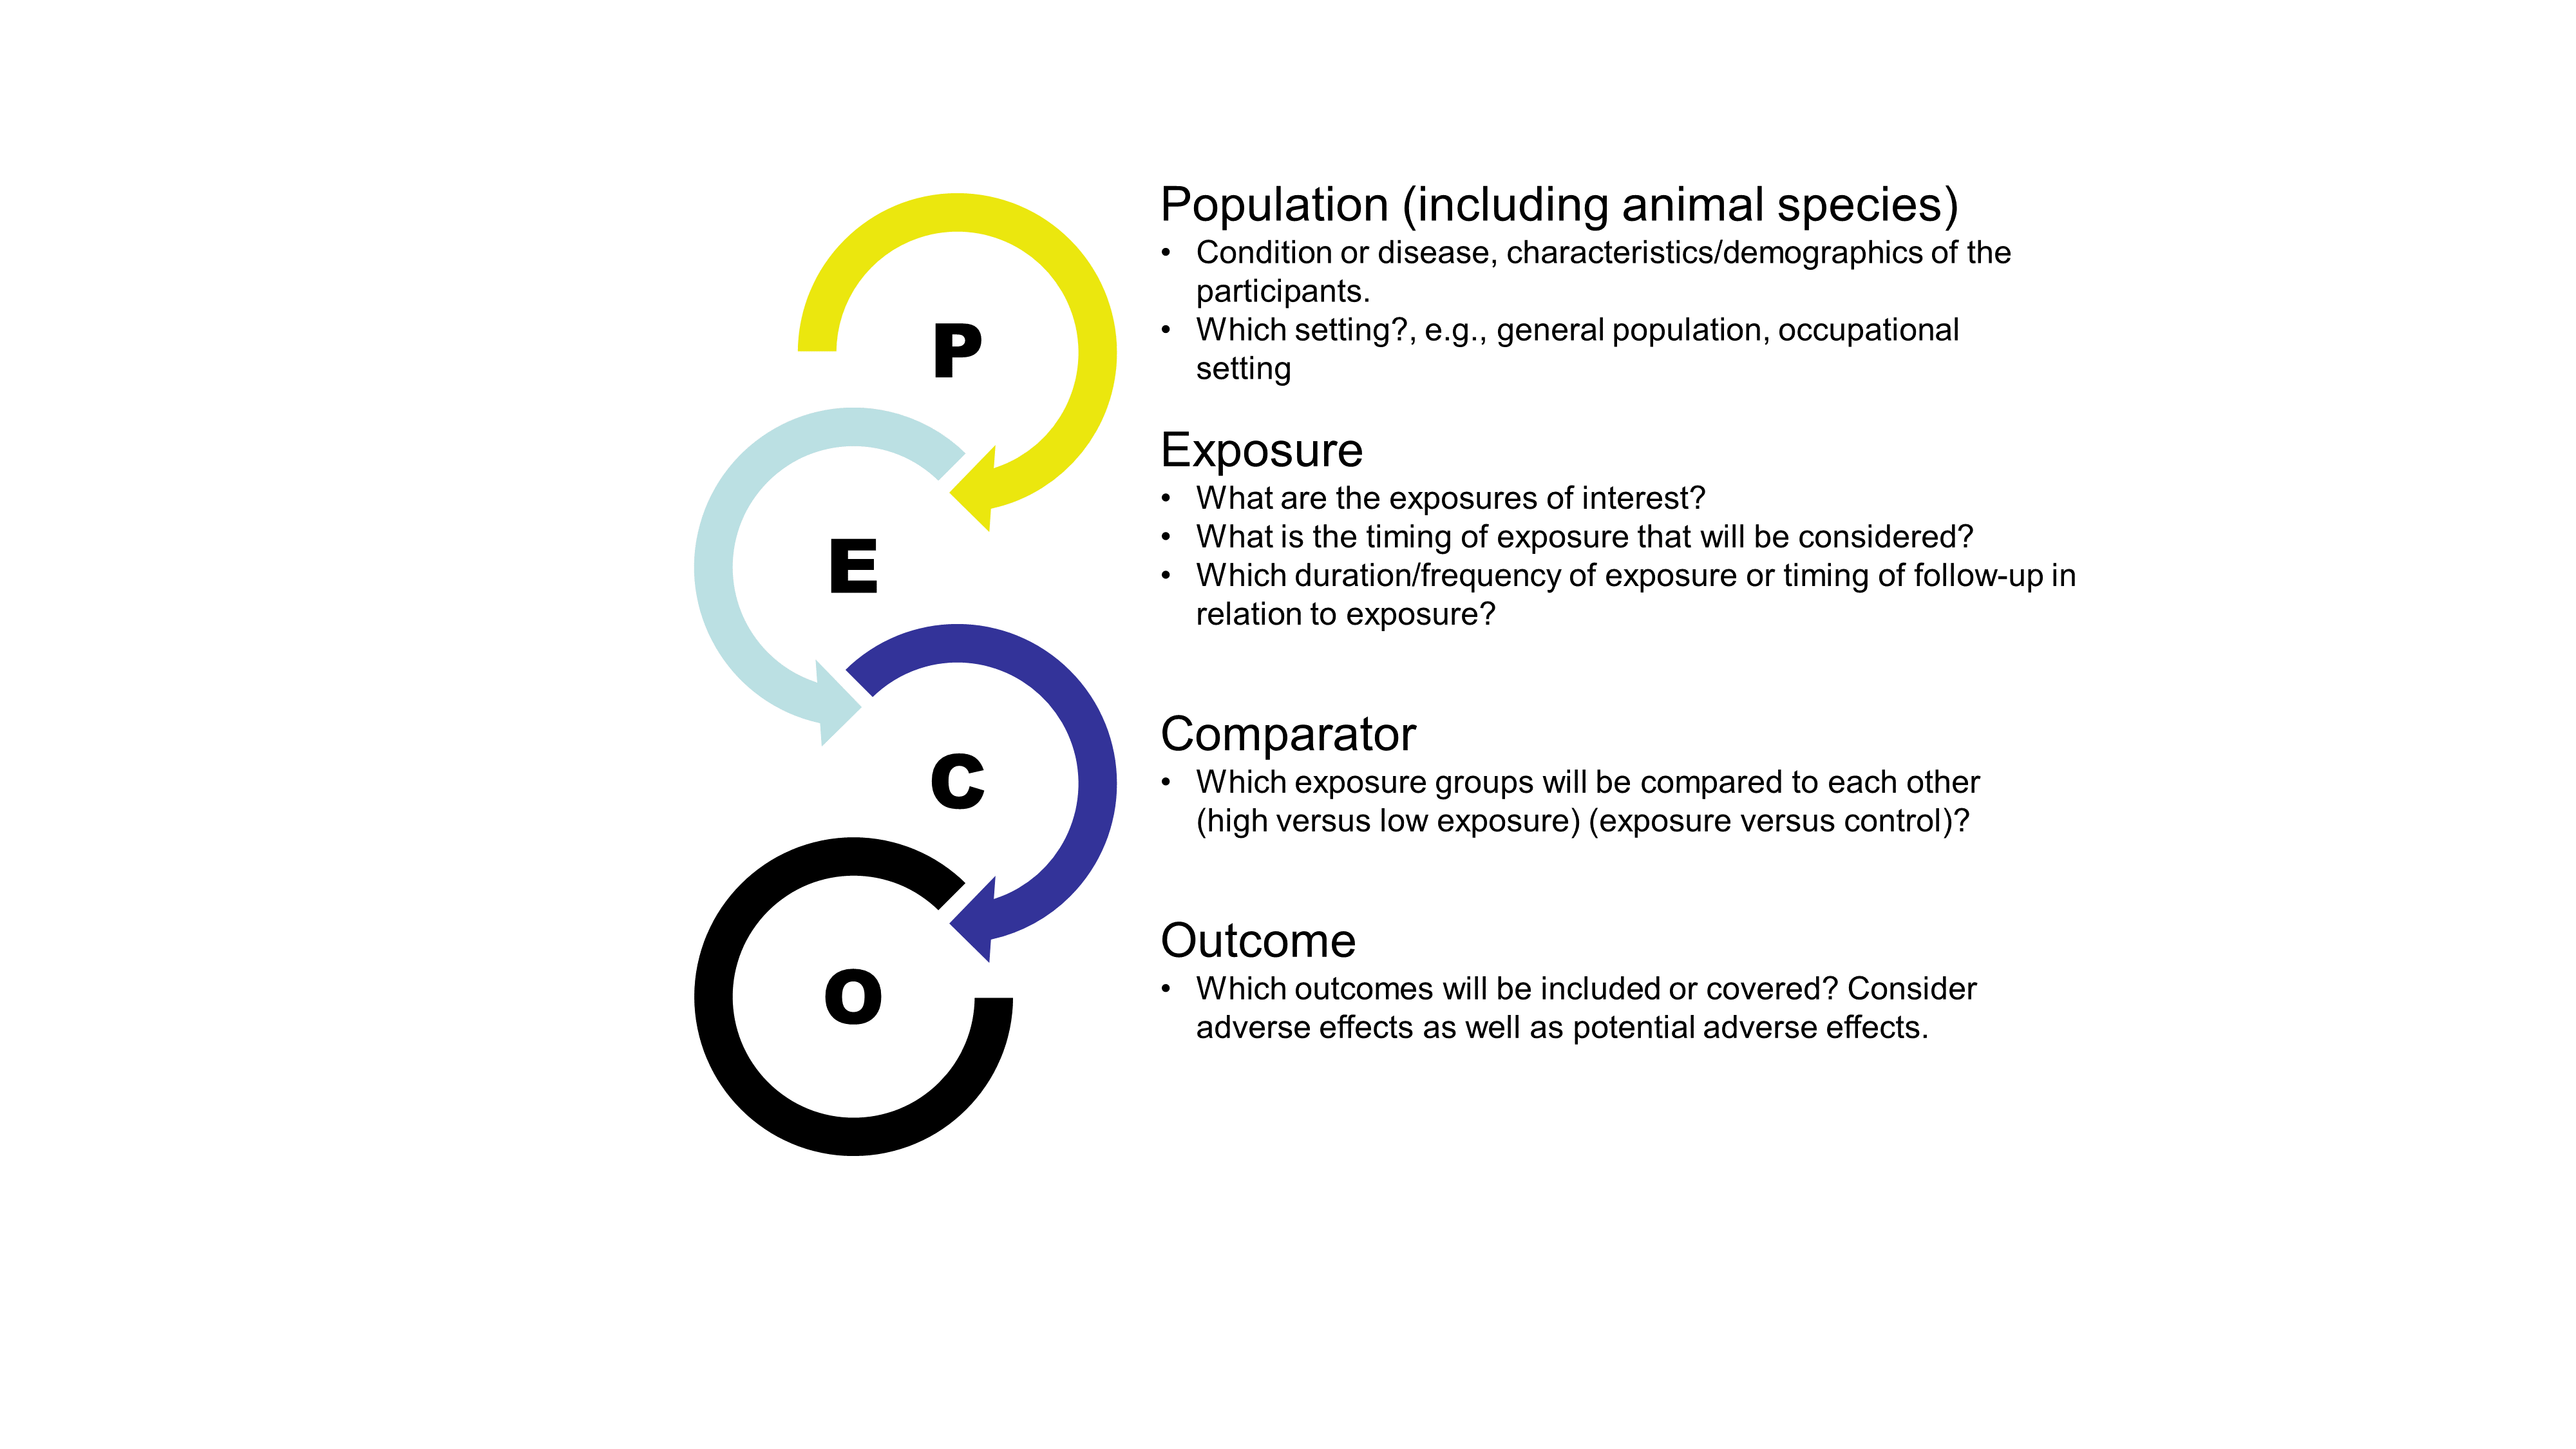 PECO.PNG